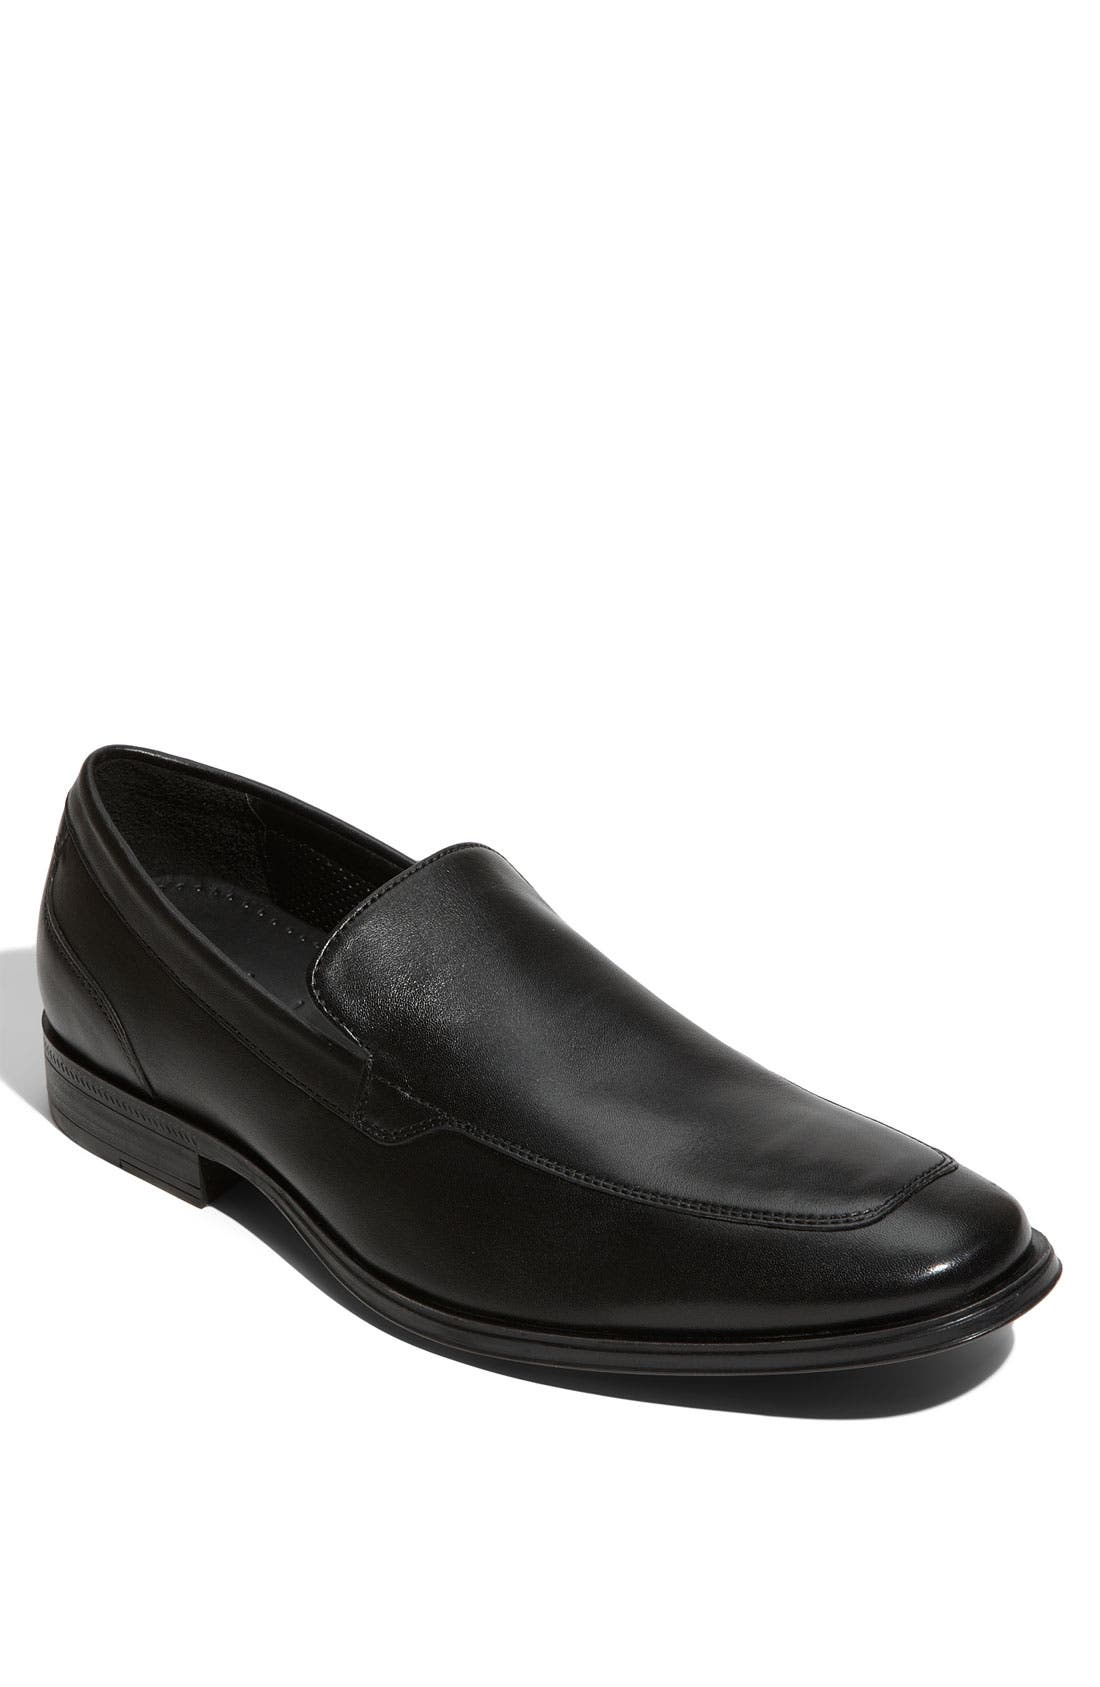 Main Image - Cole Haan 'Air Adams' Slip-On